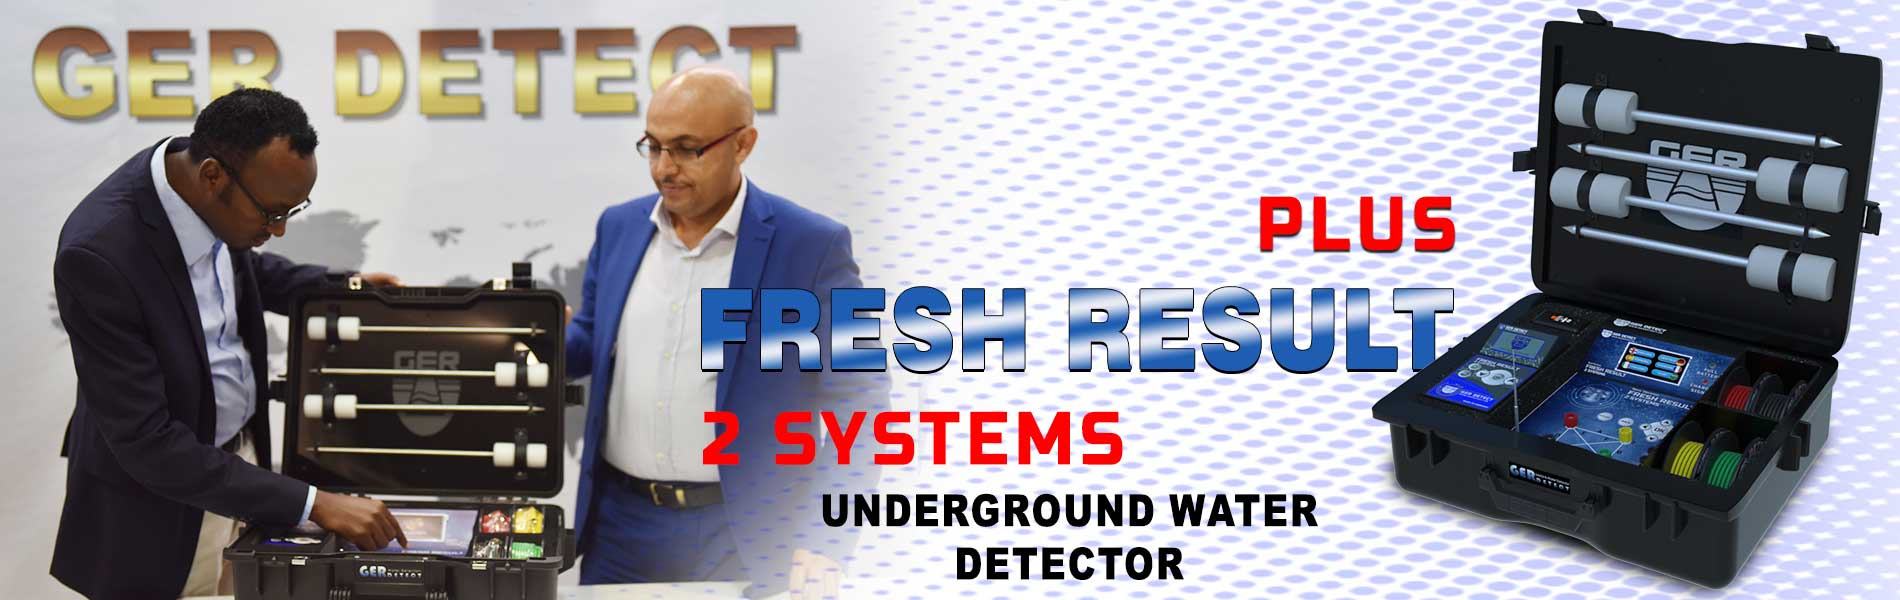 fresh-result-2-systems-plus-best-water-detector